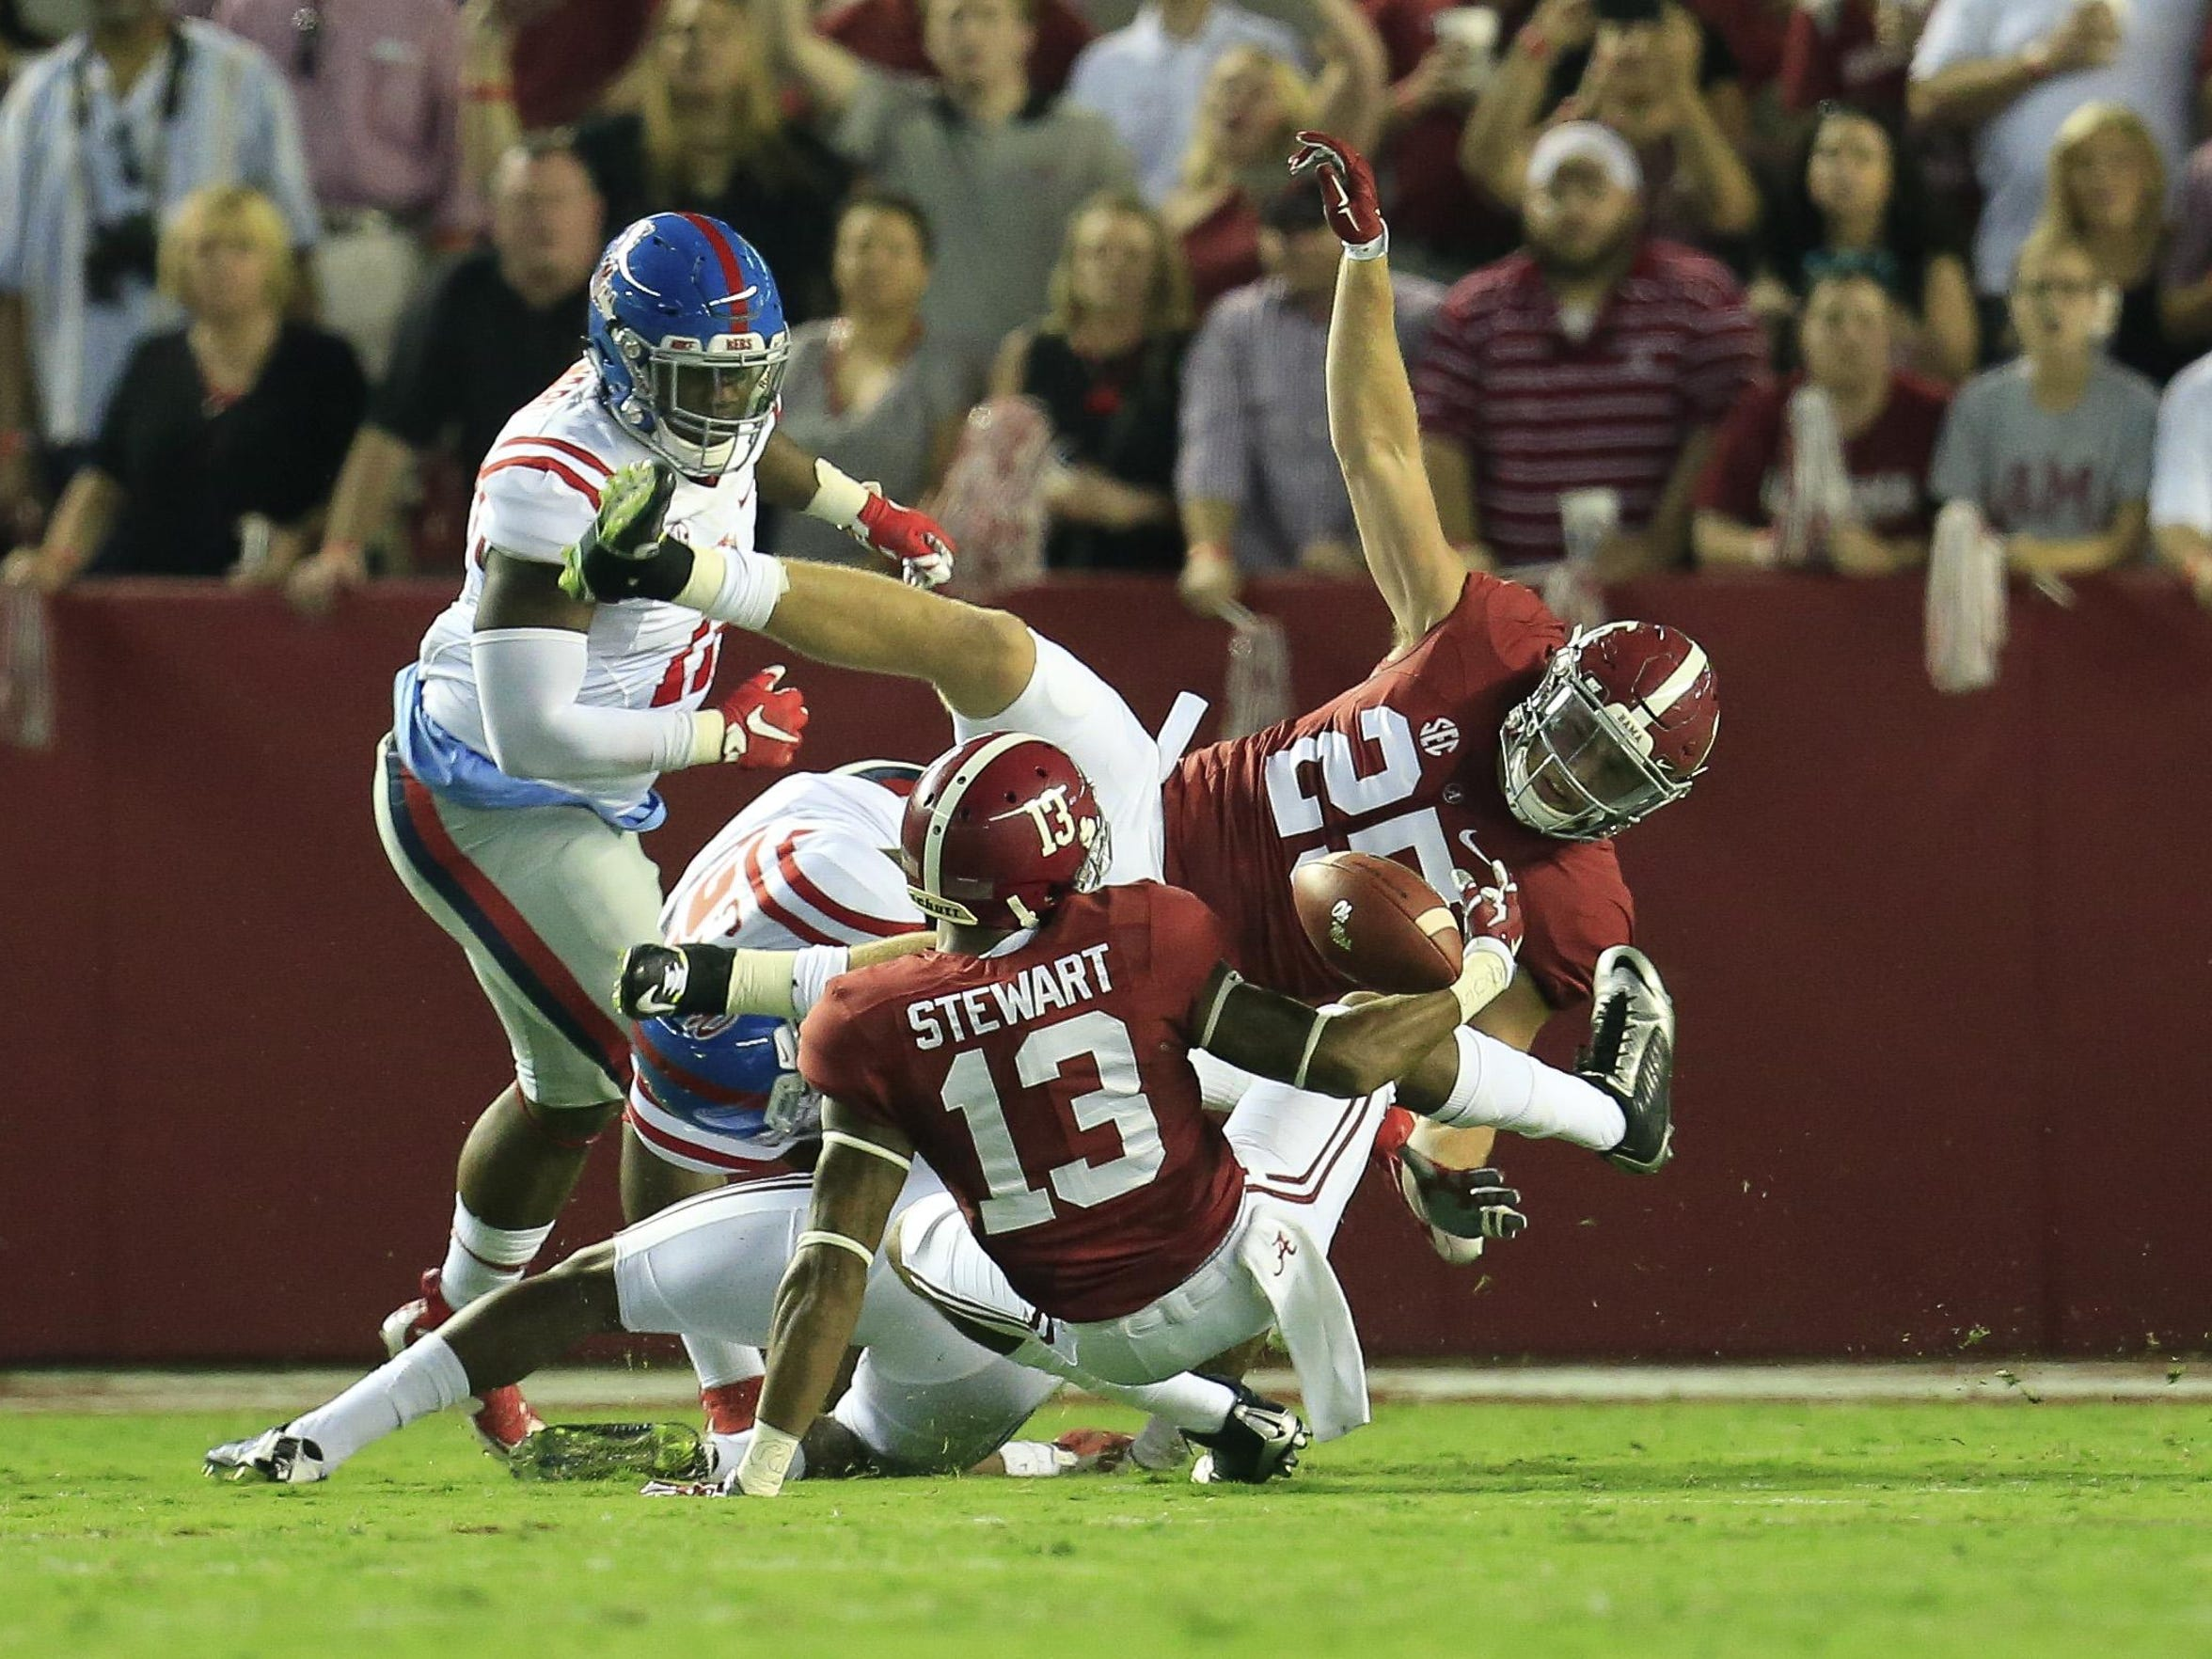 Alabama wide receiver ArDarius Stewart fumbles the ball on the opening kickoff and Ole Miss recovers this past Saturday.